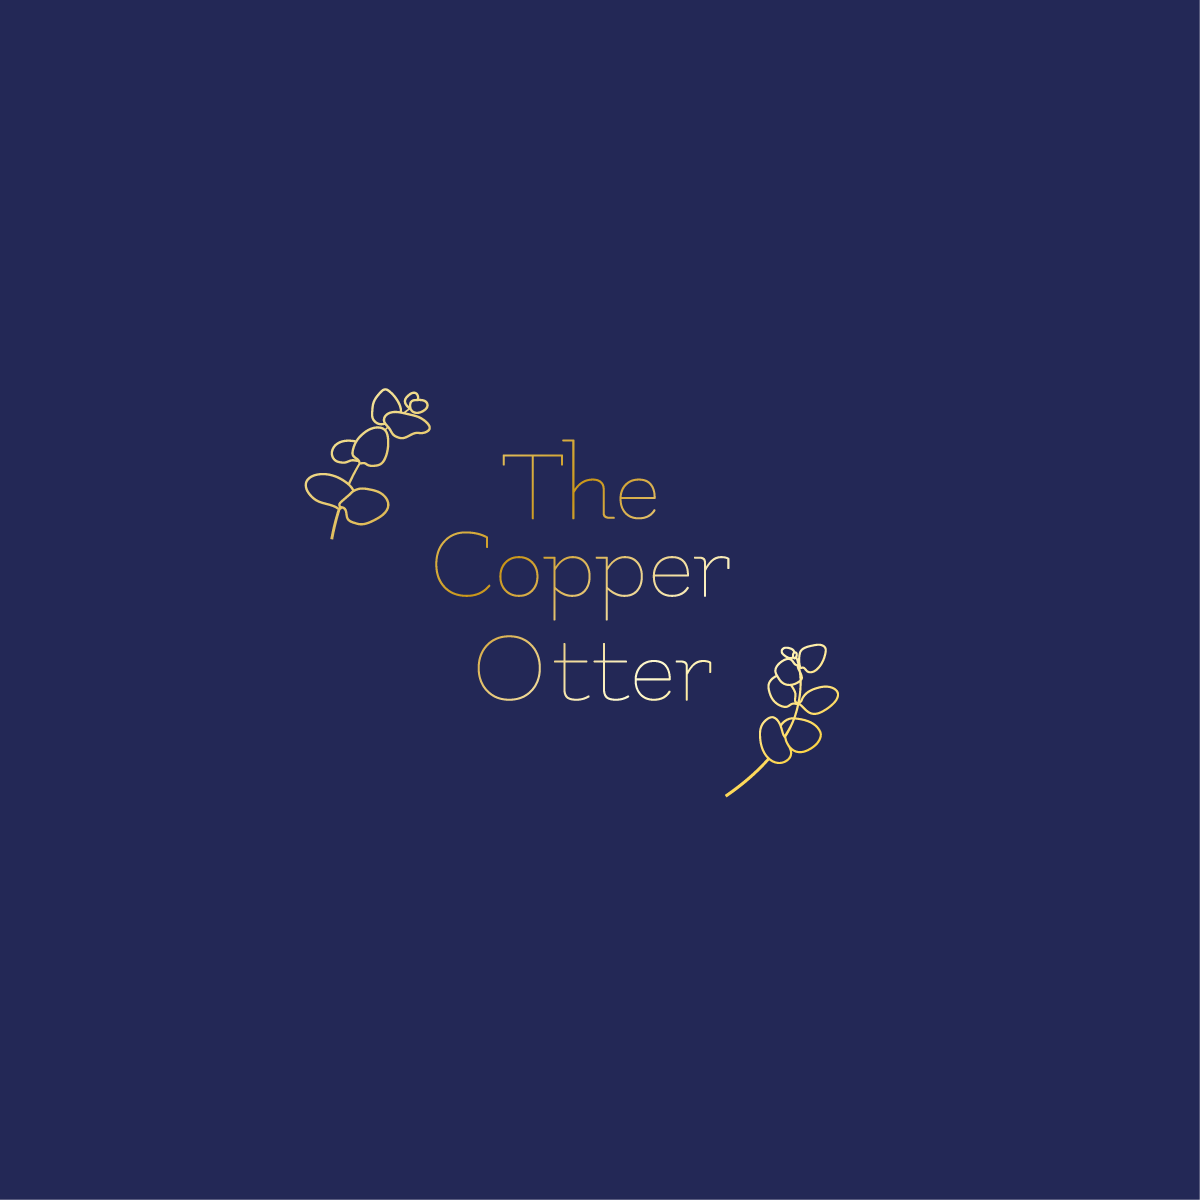 The Copper Otter Logo Design